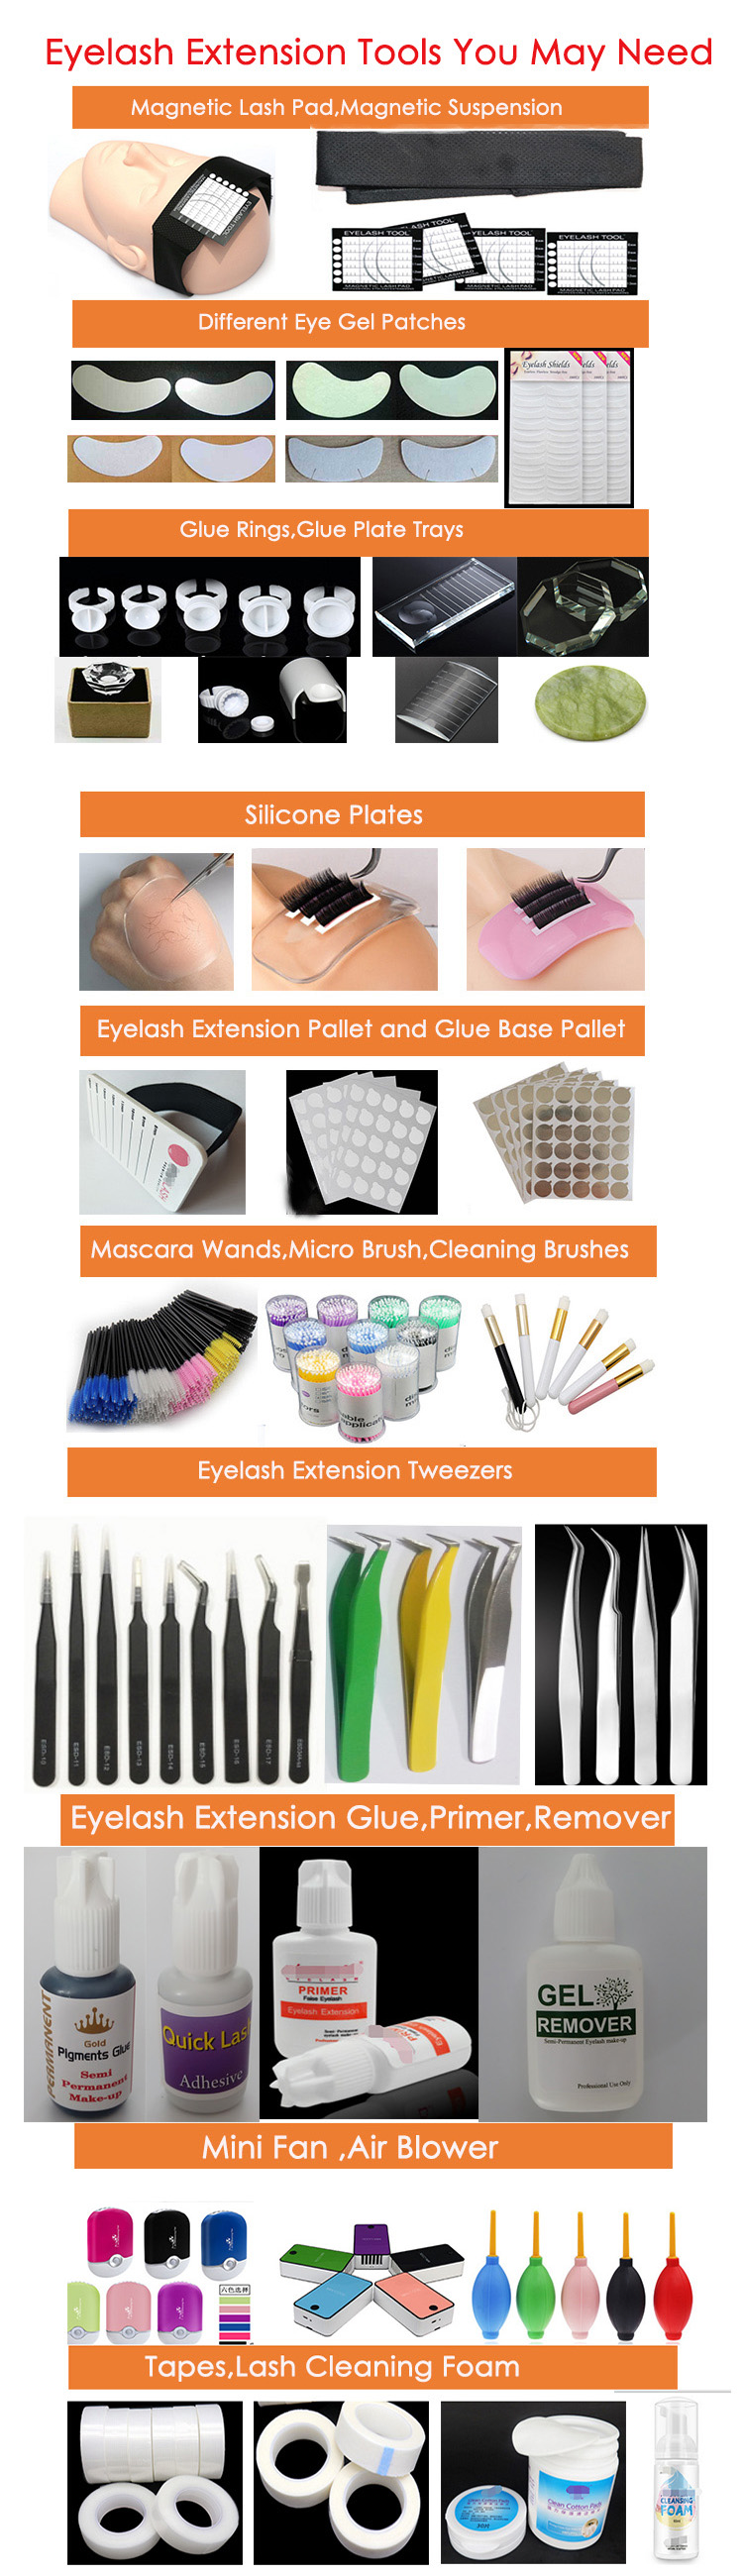 eyelash-extensions-factory.jpg